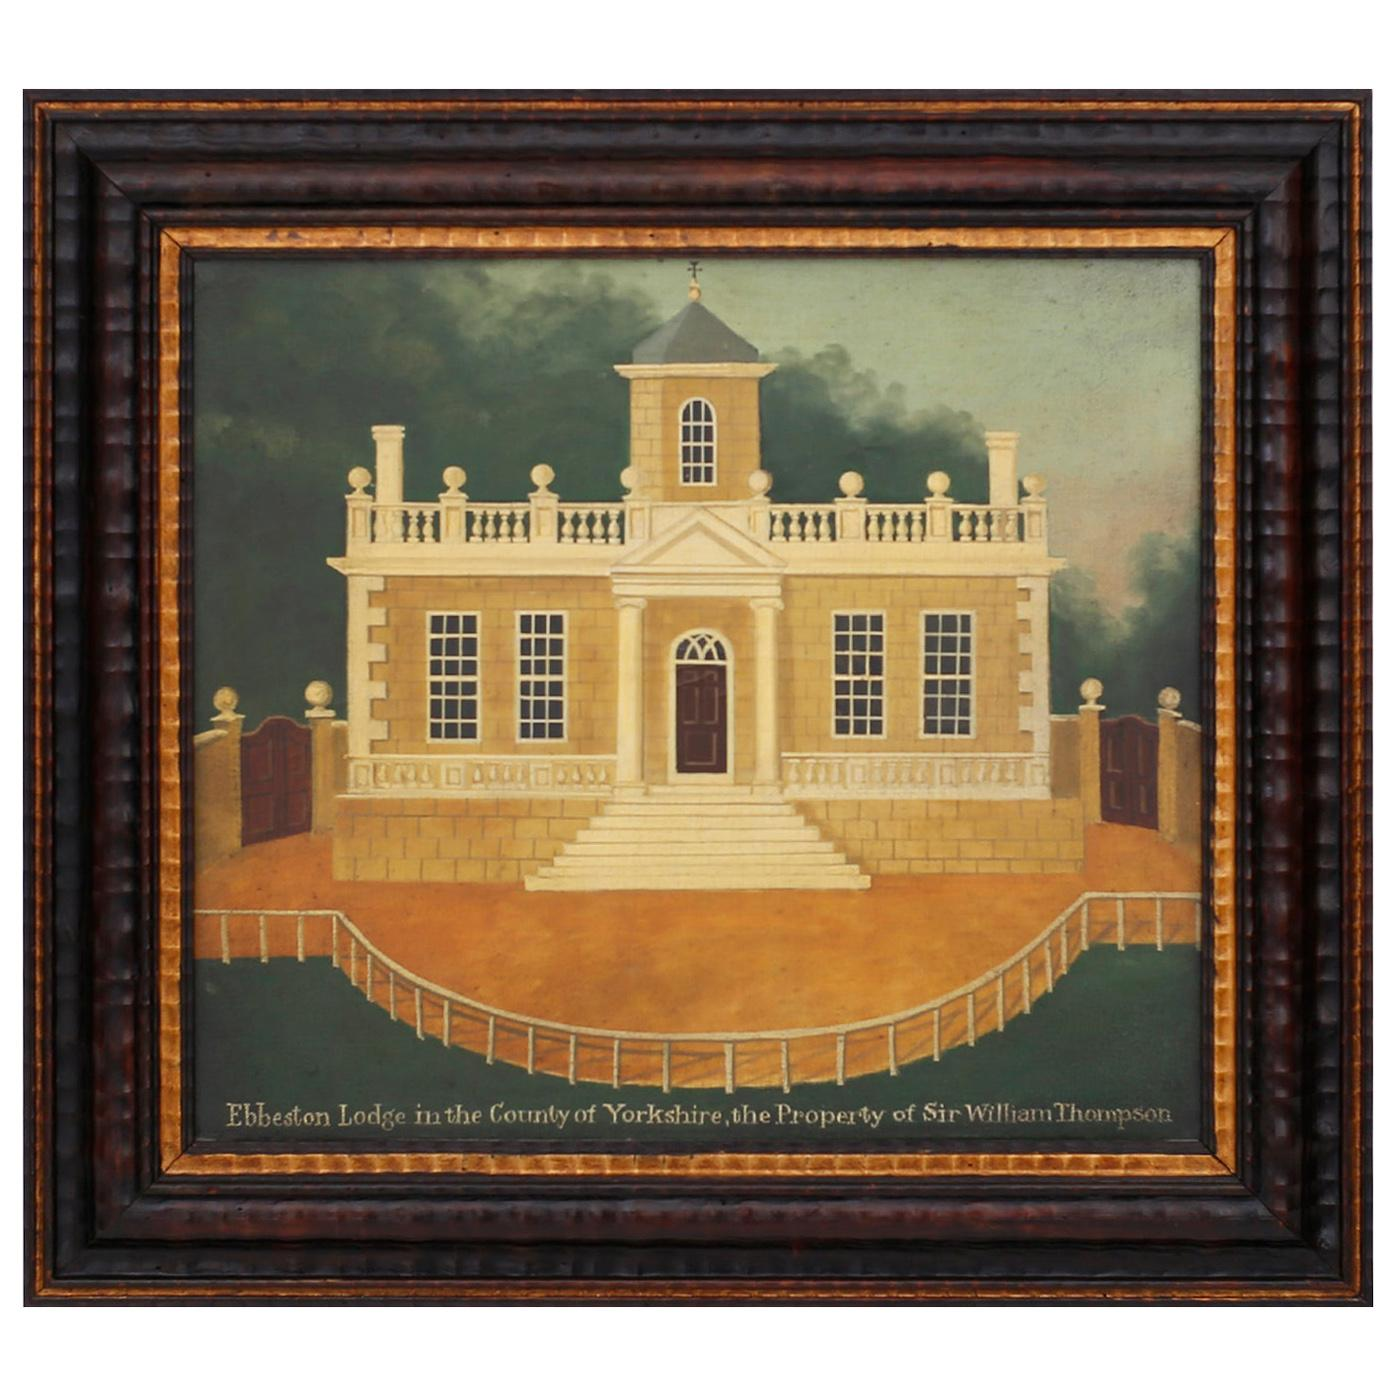 Oil Painting on Canvas of the Ebbeston Lodge